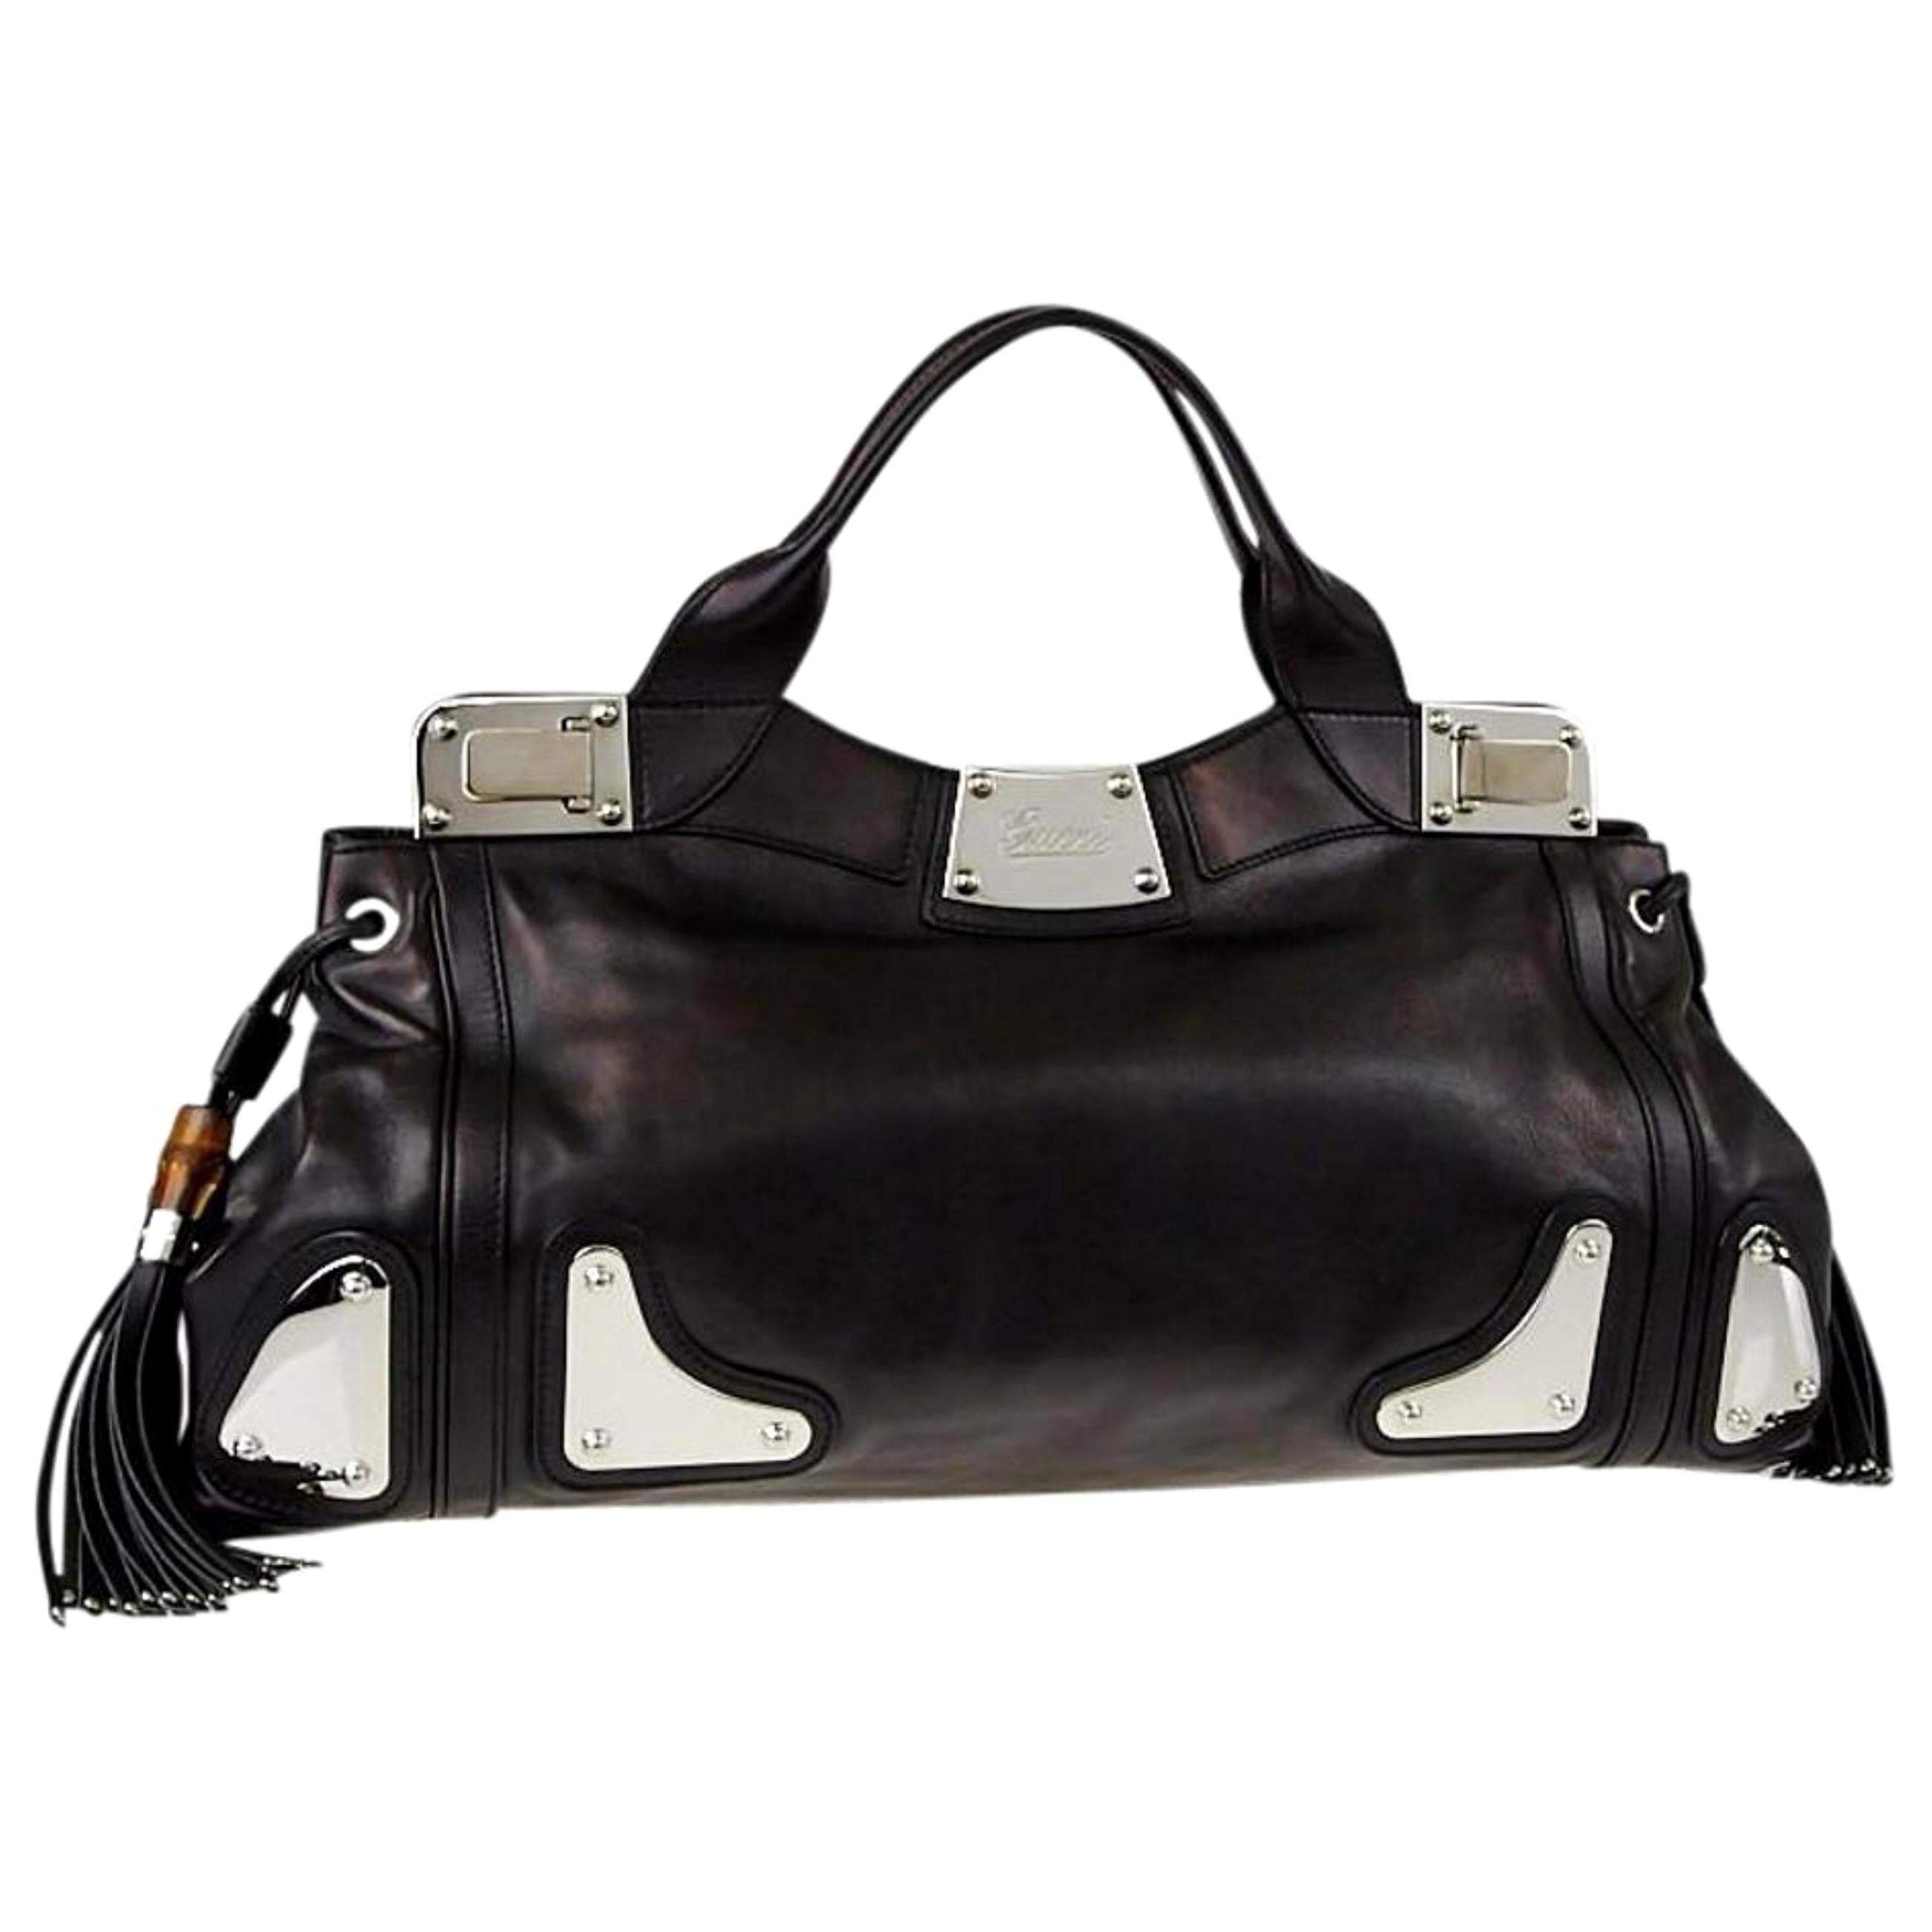 c6dbe5506bc Vintage Gucci Top Handle Bags - 416 For Sale at 1stdibs